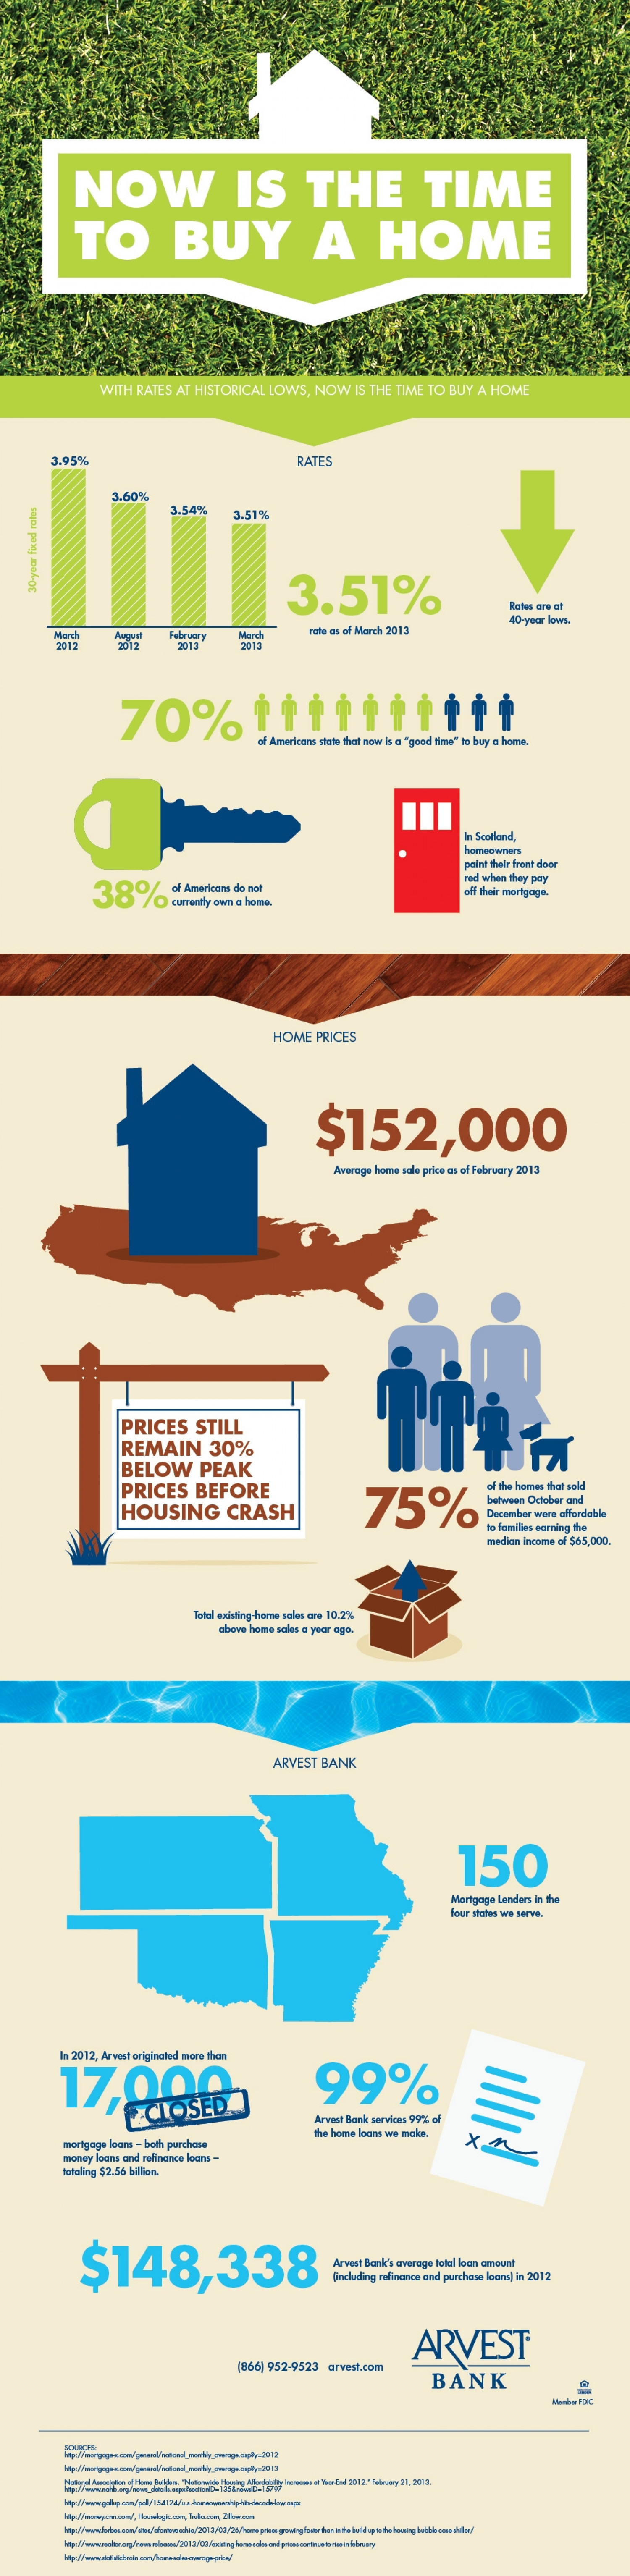 Now is The Time to Buy a Home Infographic